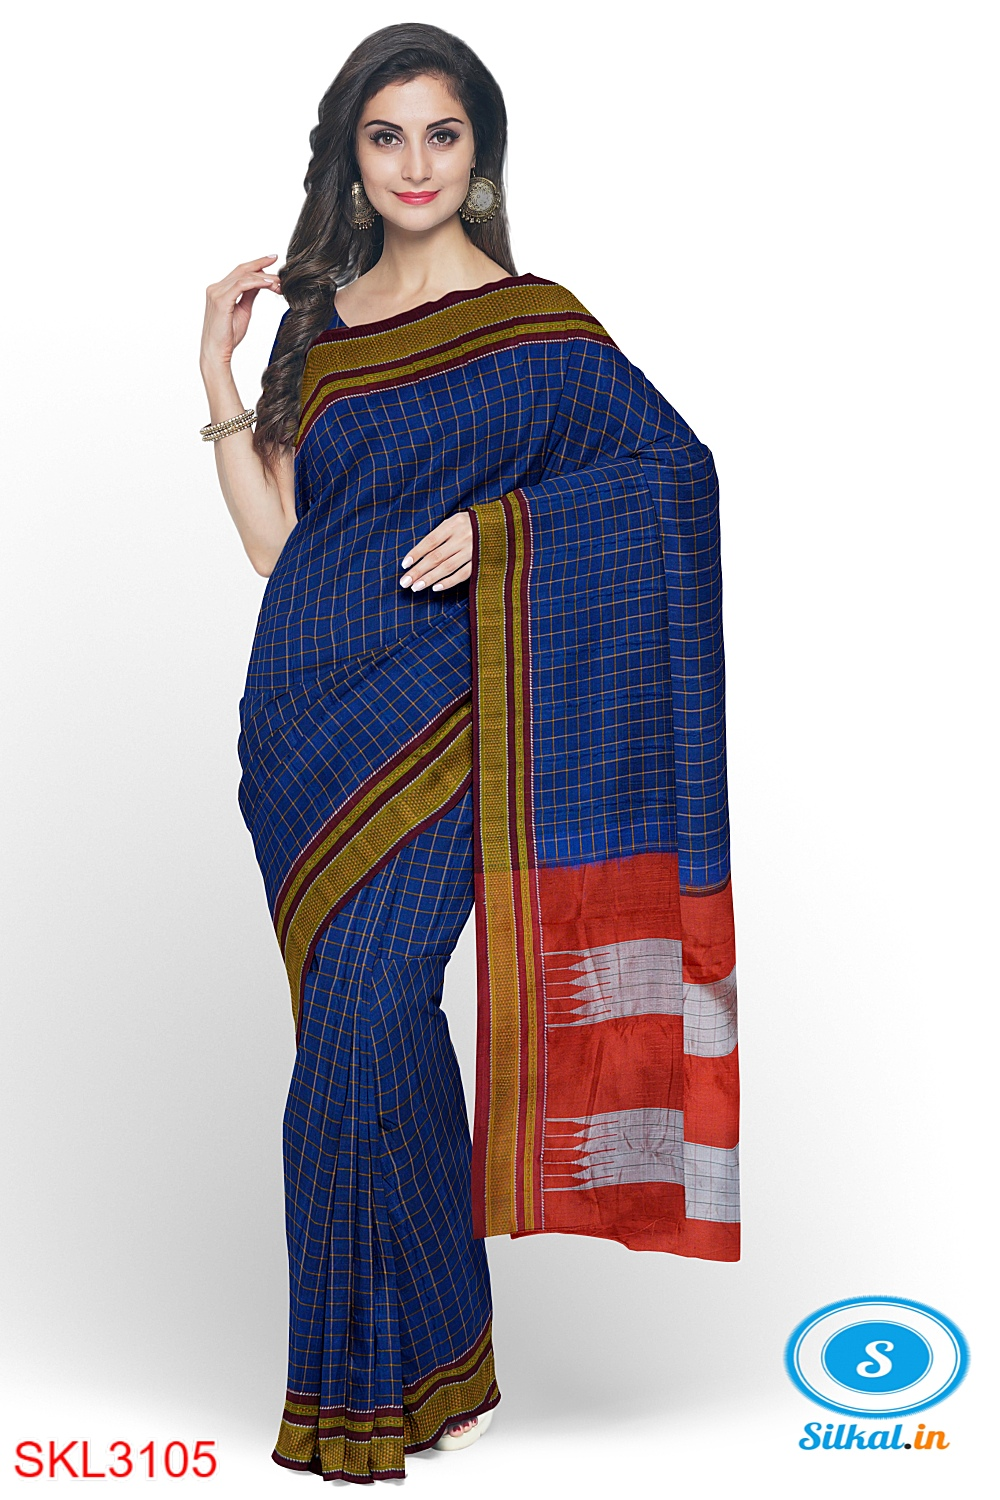 ILKAL HANDLOOM SILK BY MASRISE COTTON SMALL CHACKS CHIKKI PARAS SAREES